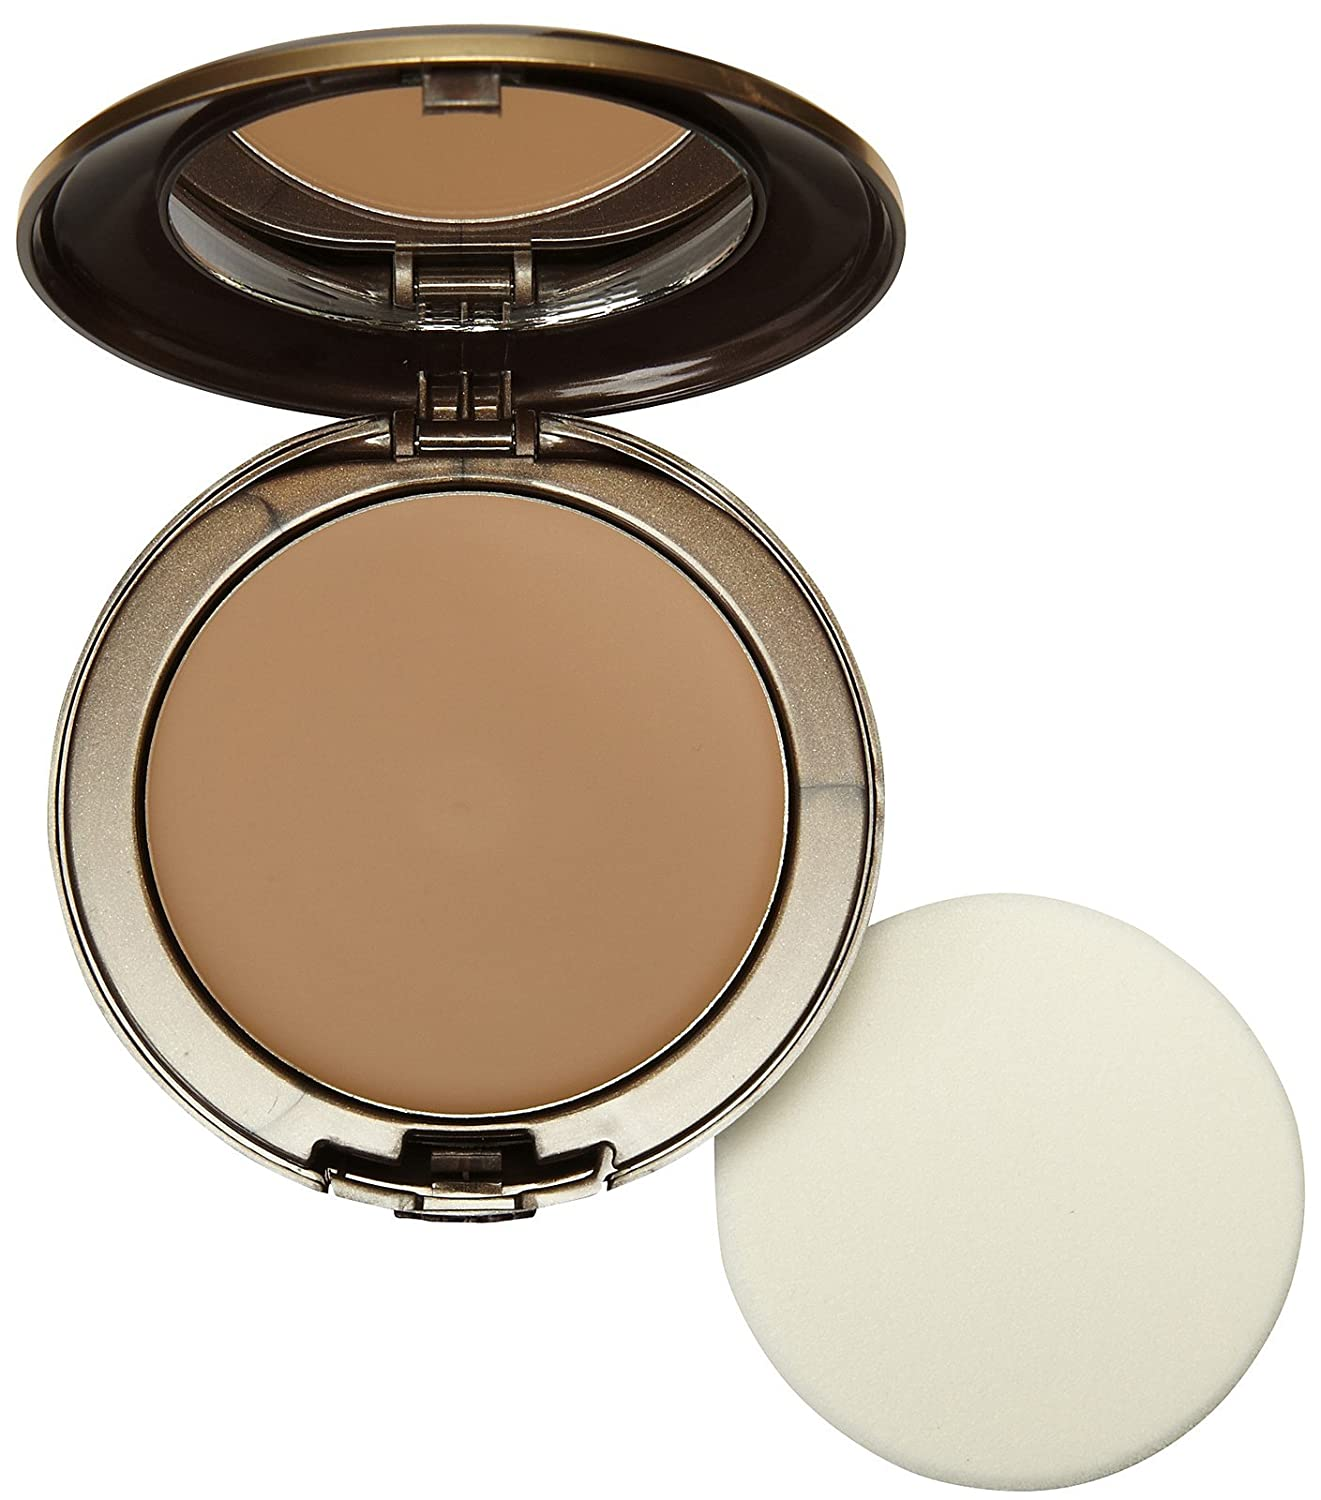 Revlon New Complexion One-Step Compact Makeup, Natural Tan [10] 0.35 oz (Pack of 5)